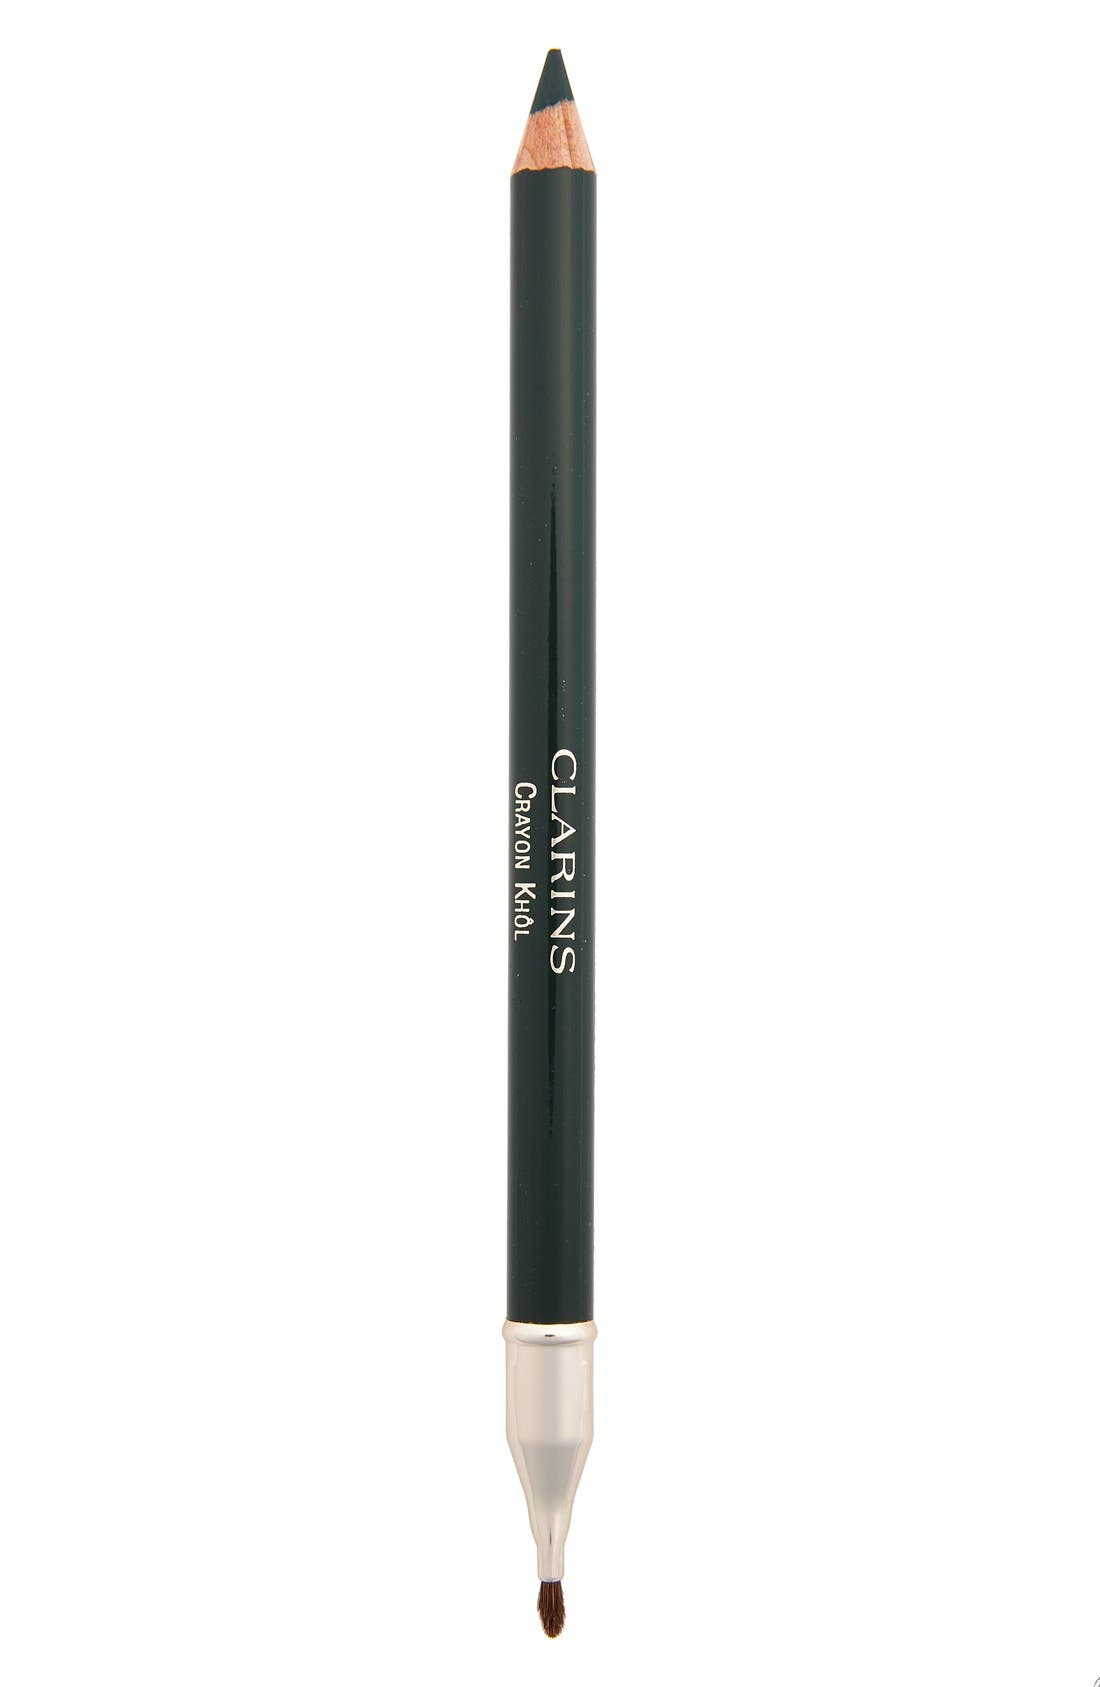 Crayon Khôl Eyeliner Pencil,                             Main thumbnail 1, color,                             09-INTENSE GREEN